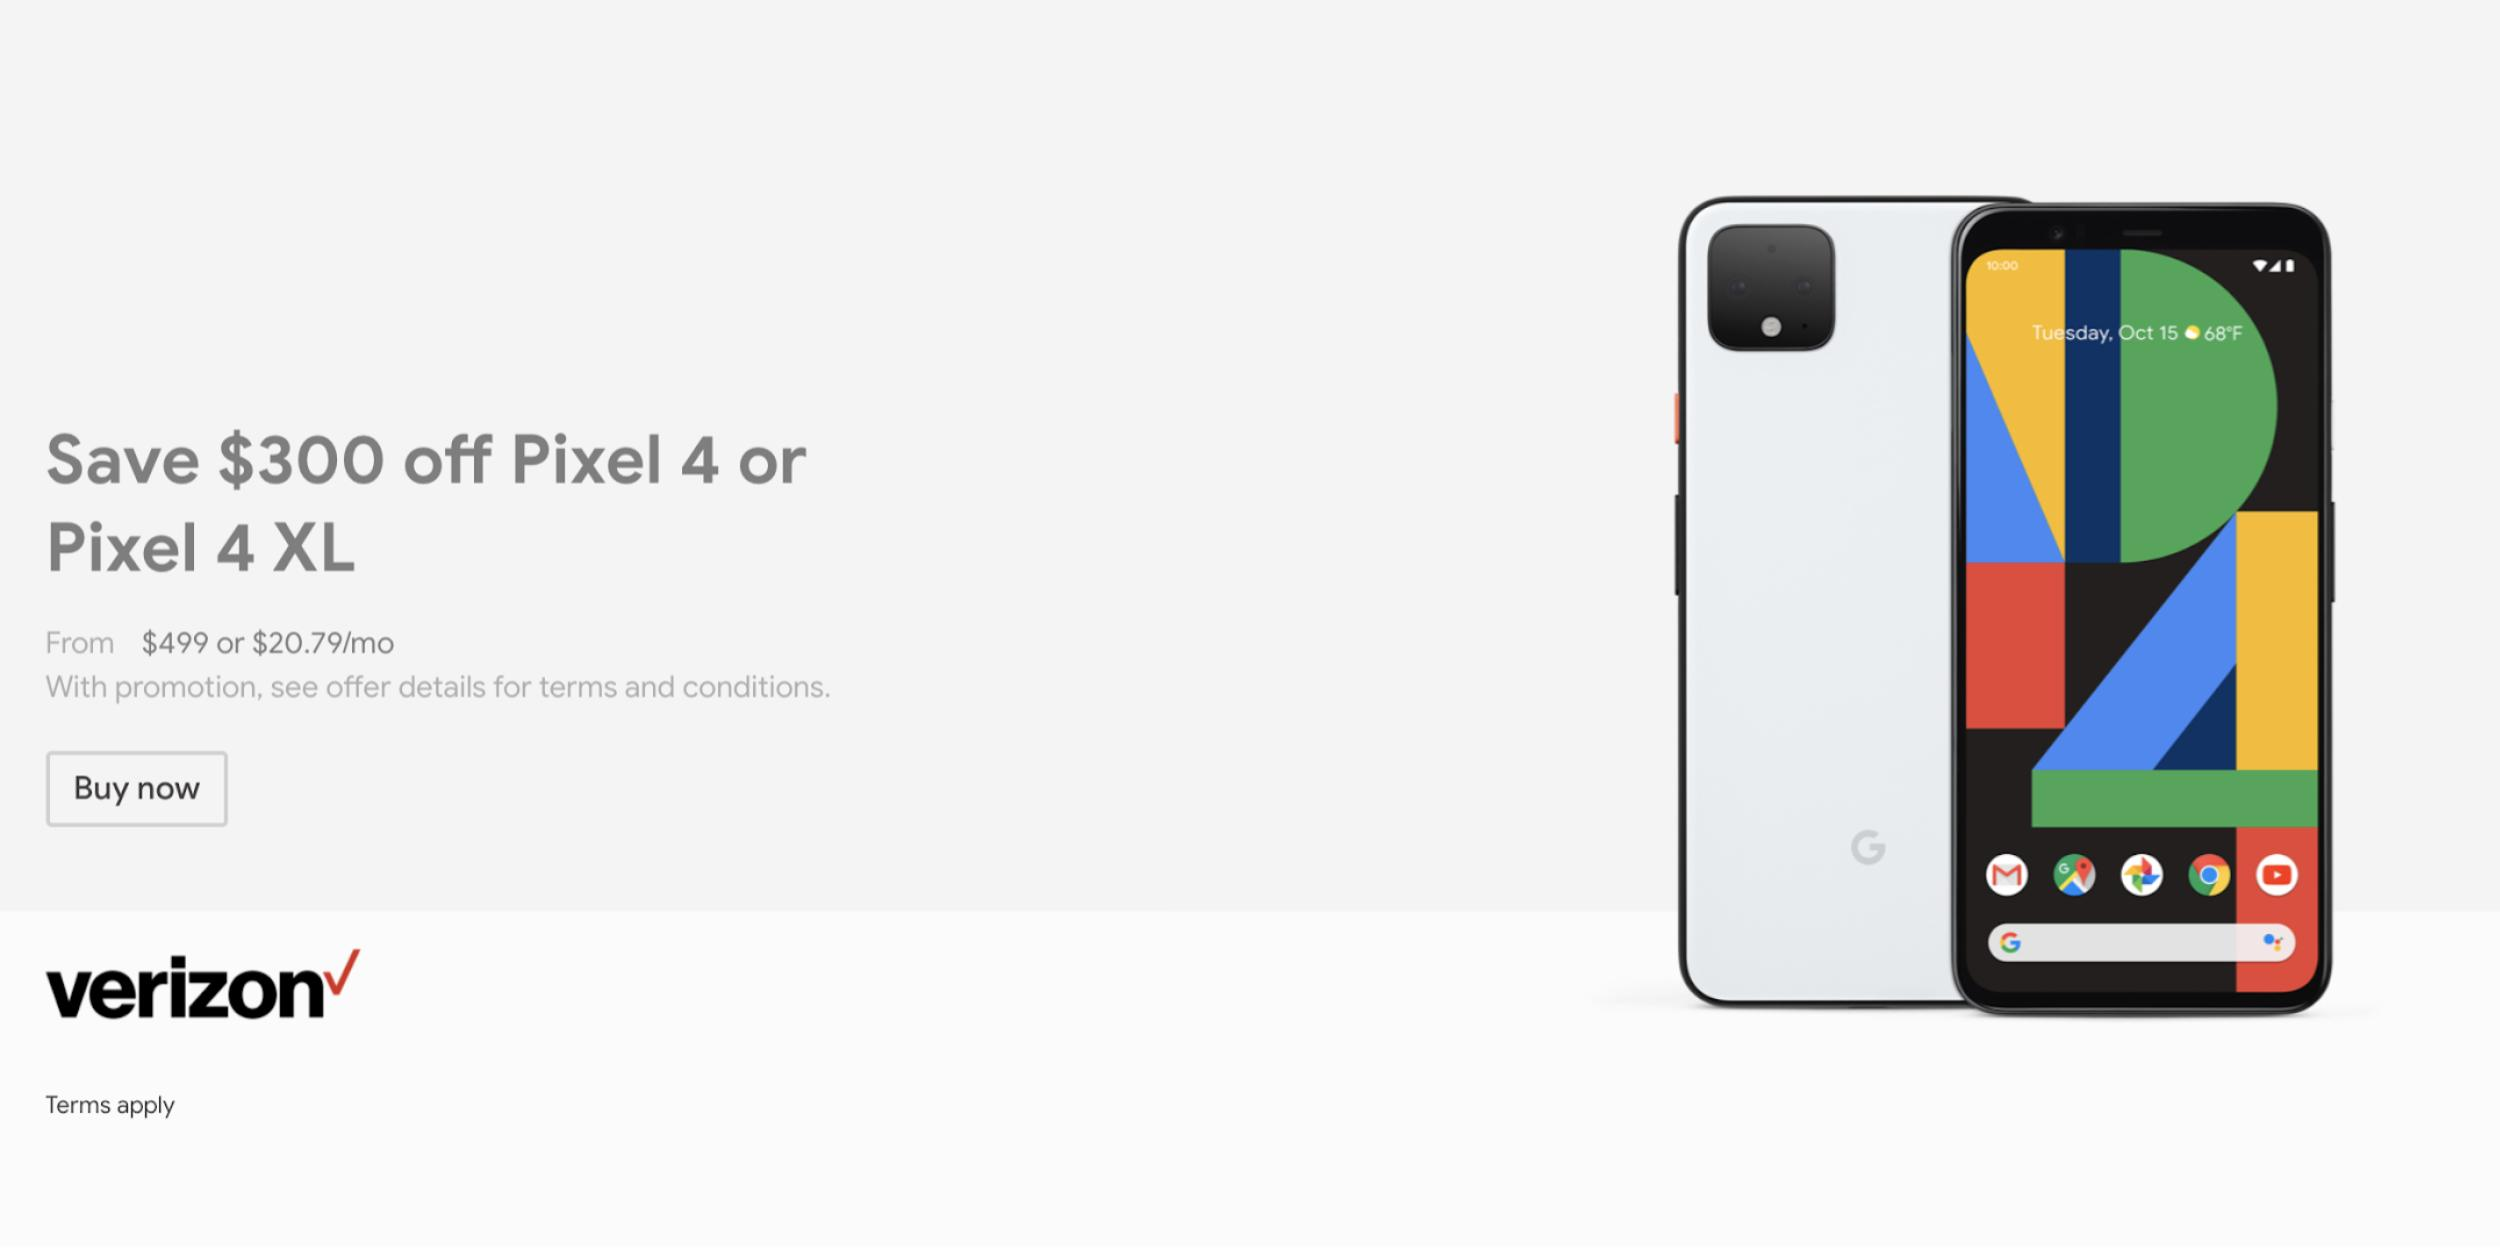 Google Store Discounts Pixel 4 By 300 To 499 For Verizon 9to5google